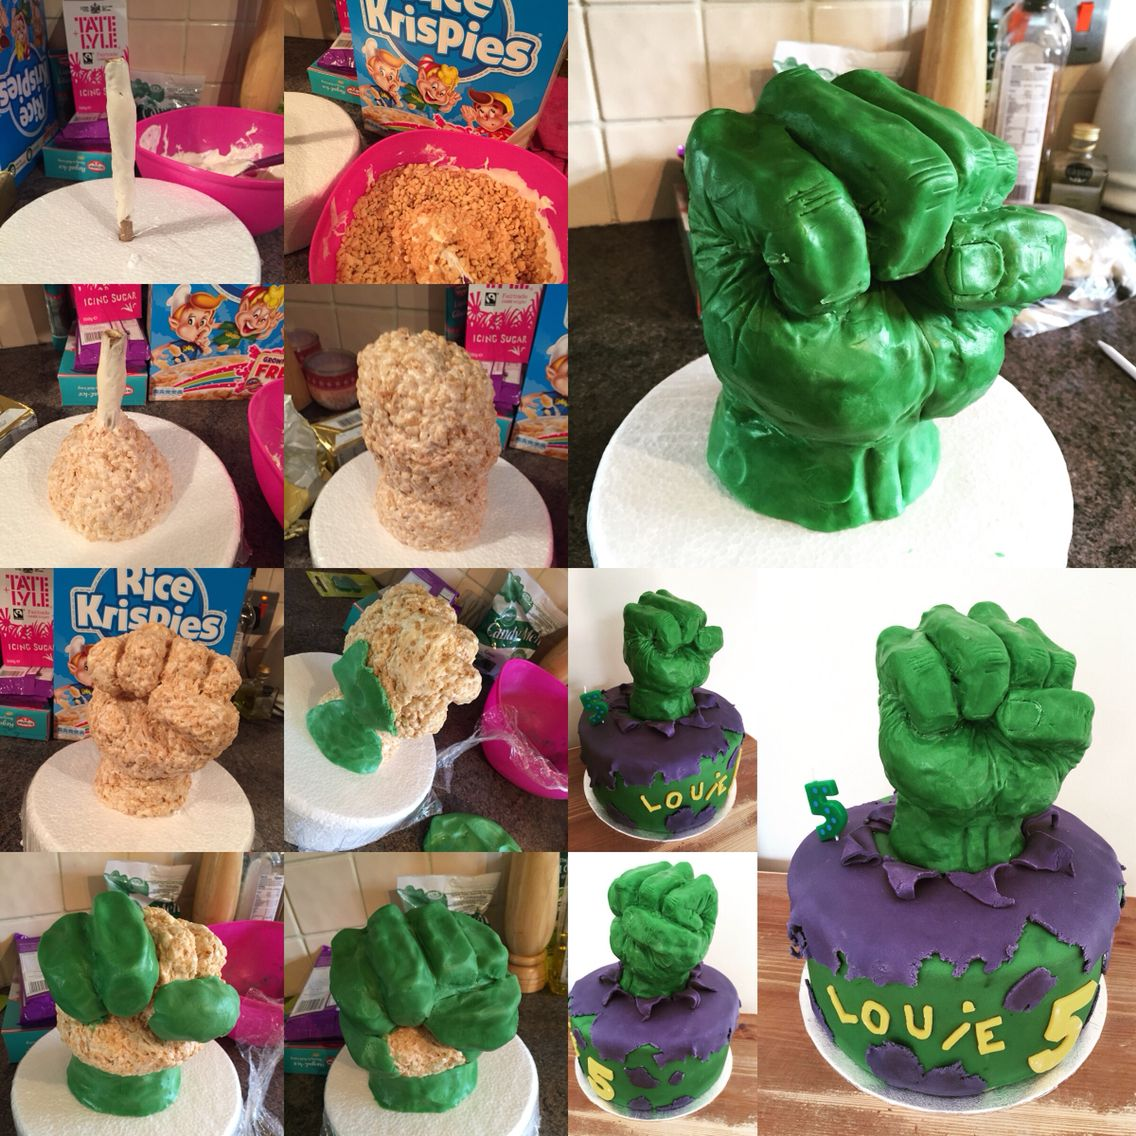 Hulk fist tutorial rice crispy treat and candy melt modelling hulk fist tutorial rice crispy treat and candy melt modelling chocolate tips 1 use a dowel or wire to support rice crispies cover it in a bit of ccuart Image collections